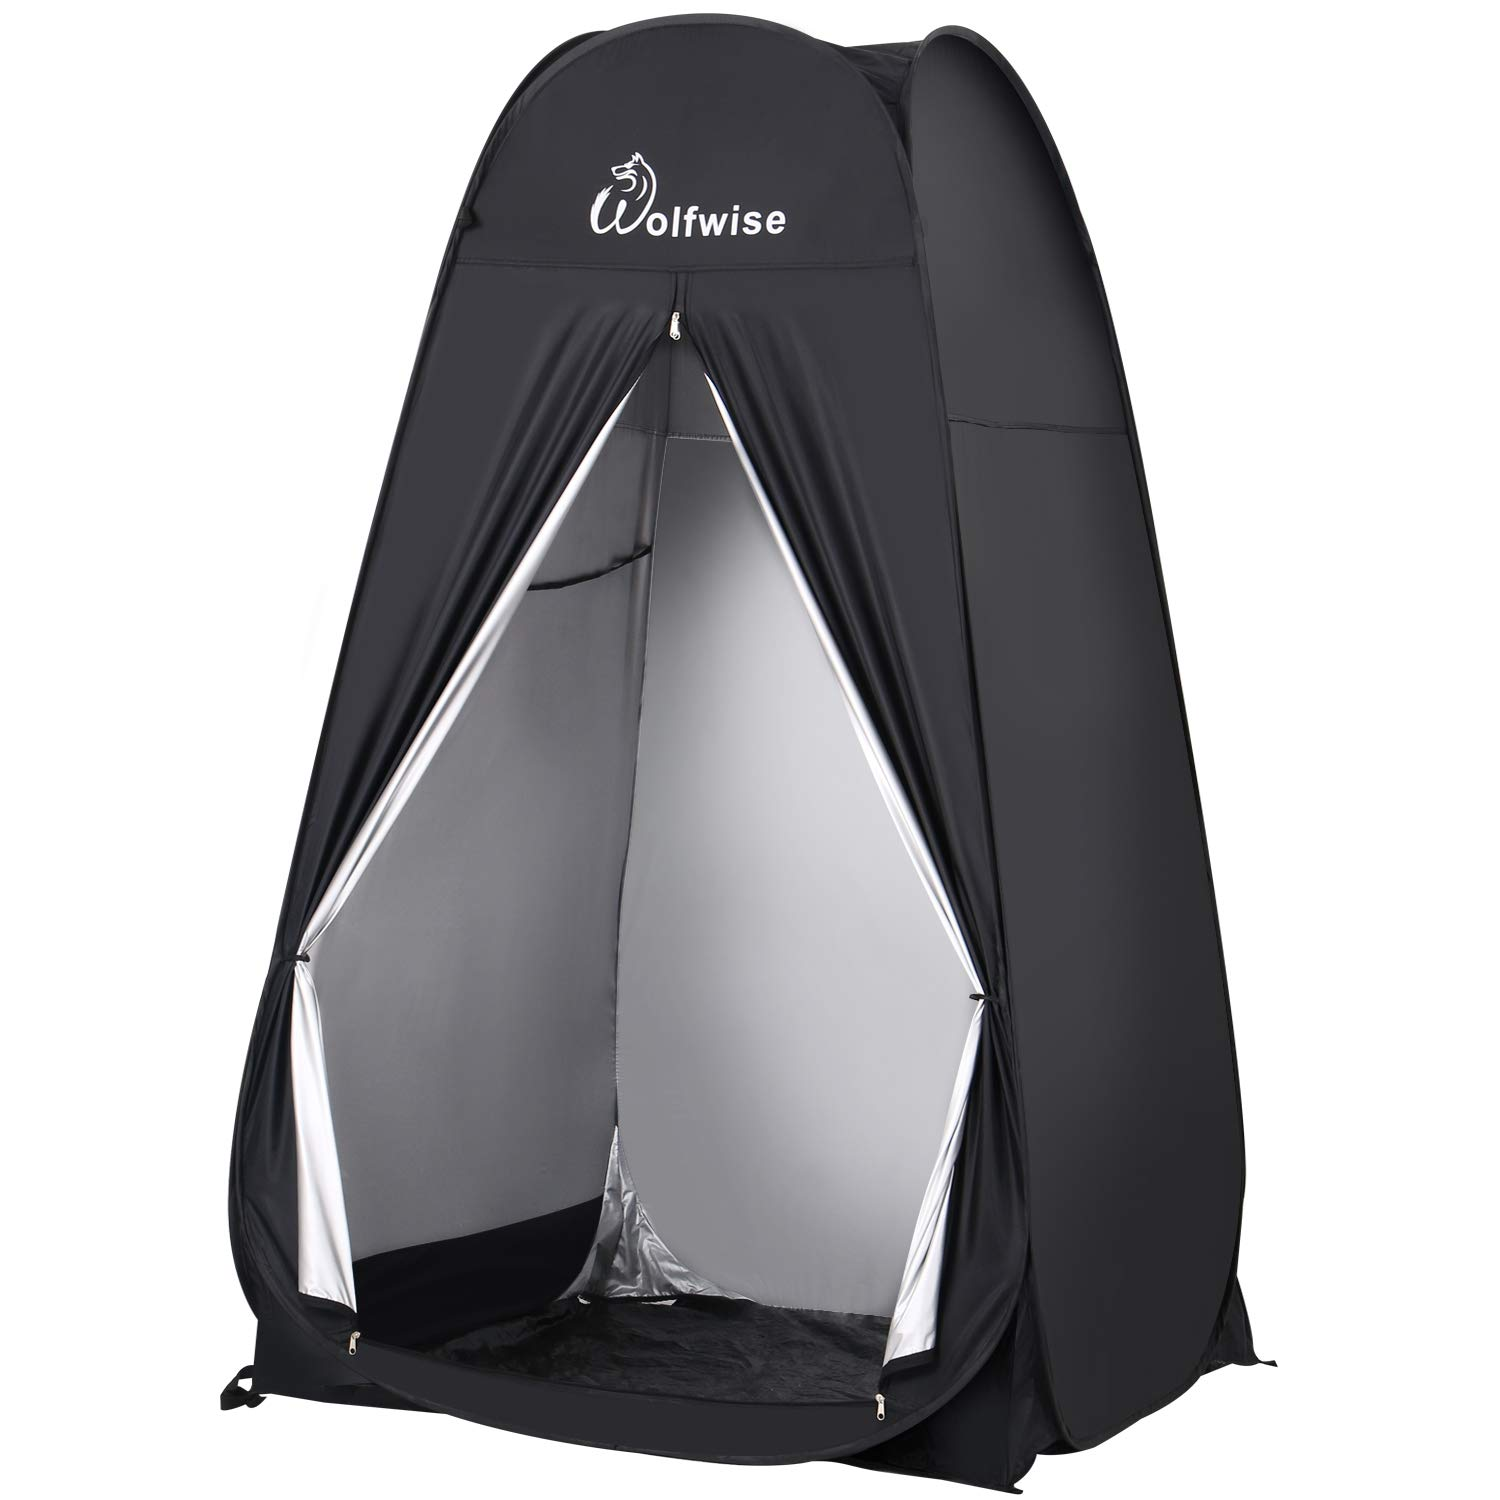 WolfWise Portable Pop Up Privacy Tent